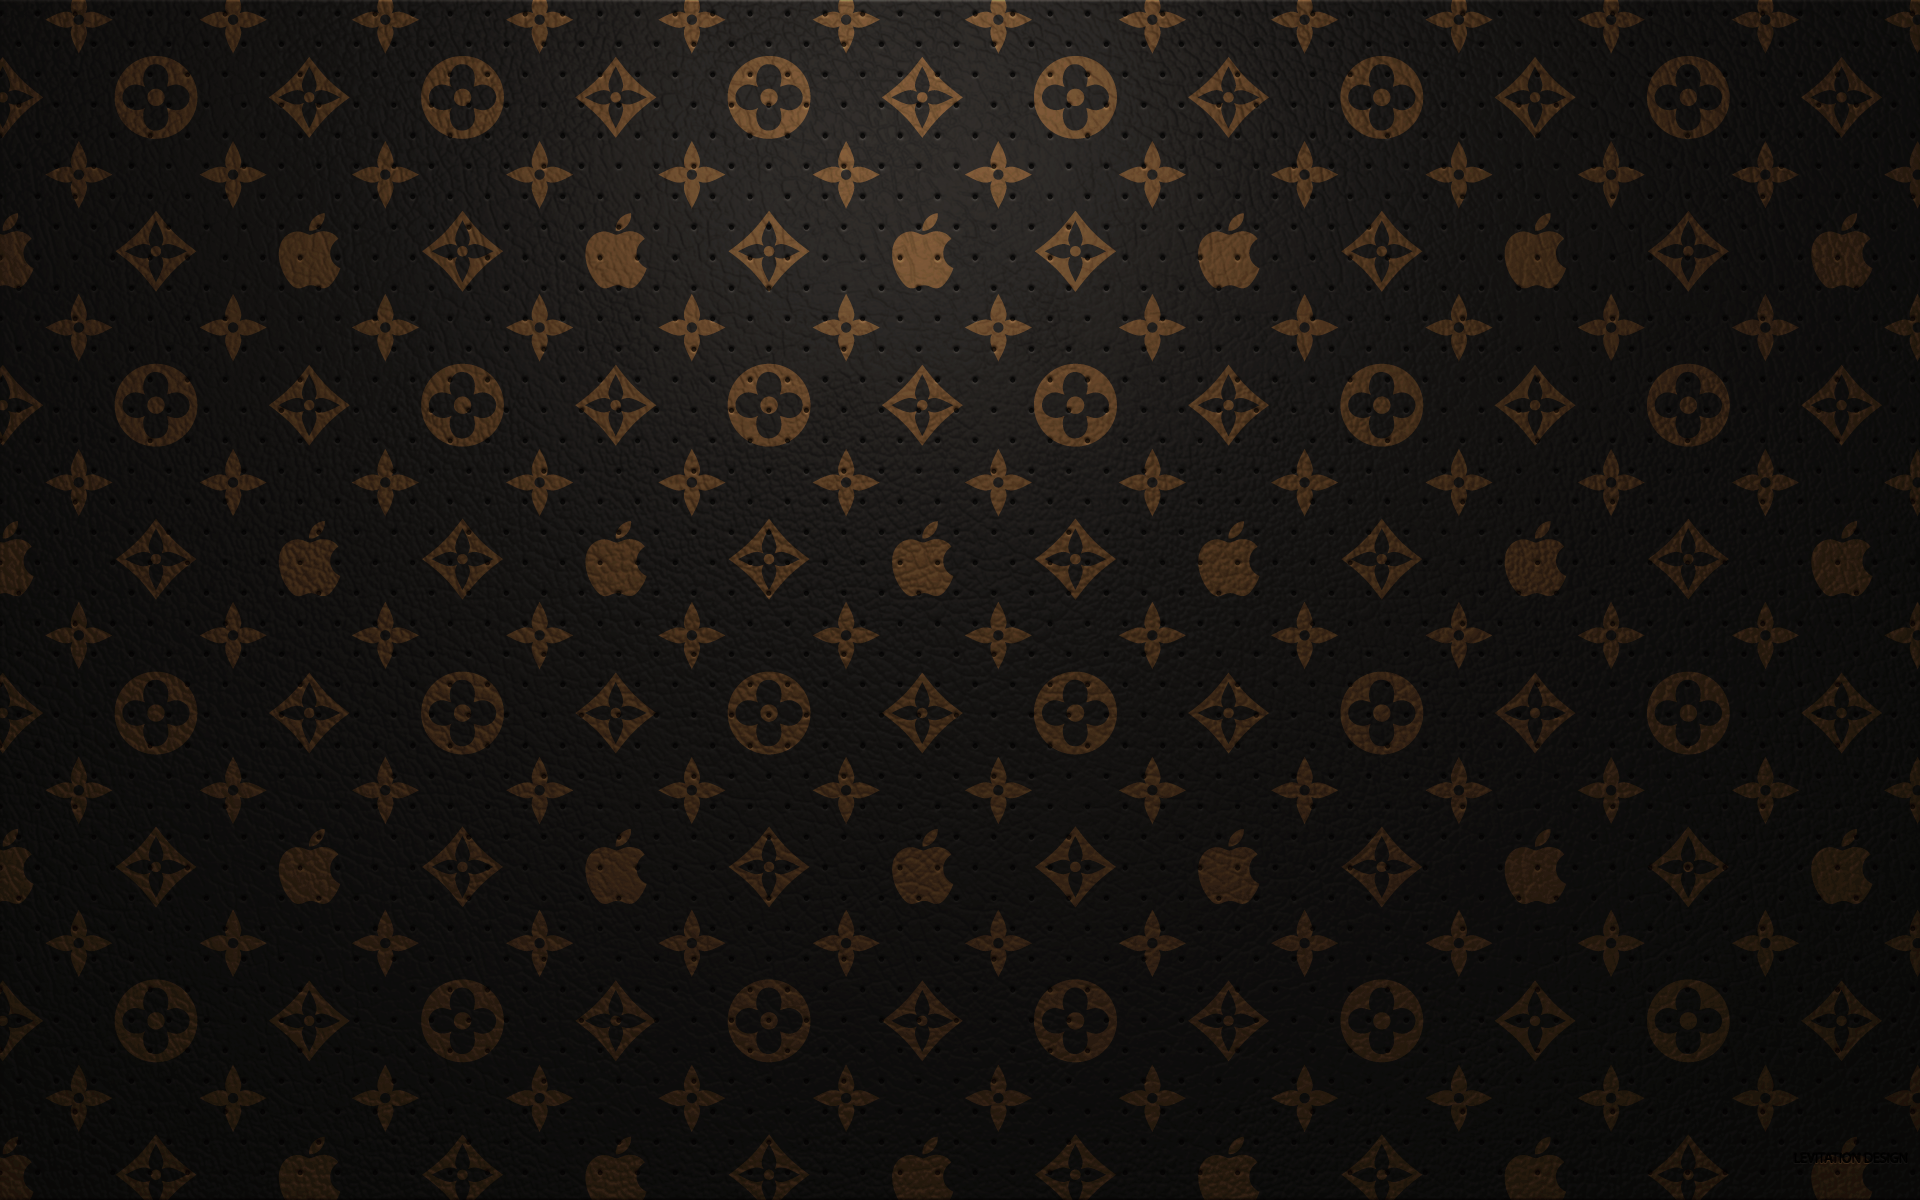 Louis vuitton bolsos wallpaper 61578 for Expensive wallpaper companies